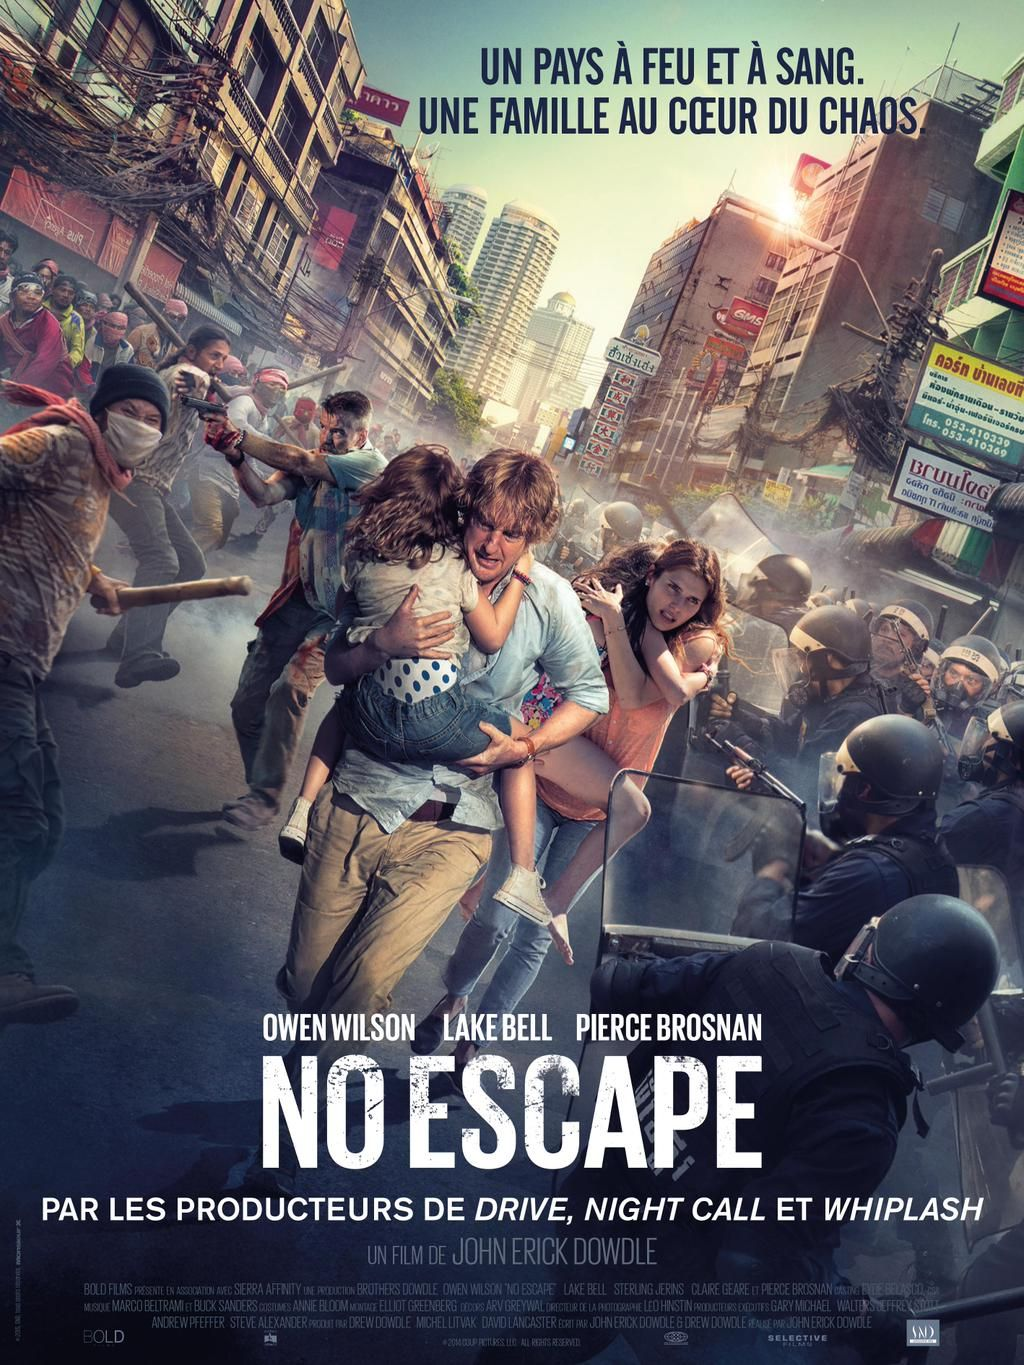 Allocine On Escape Movie Full Movies Online Free Cinema Posters